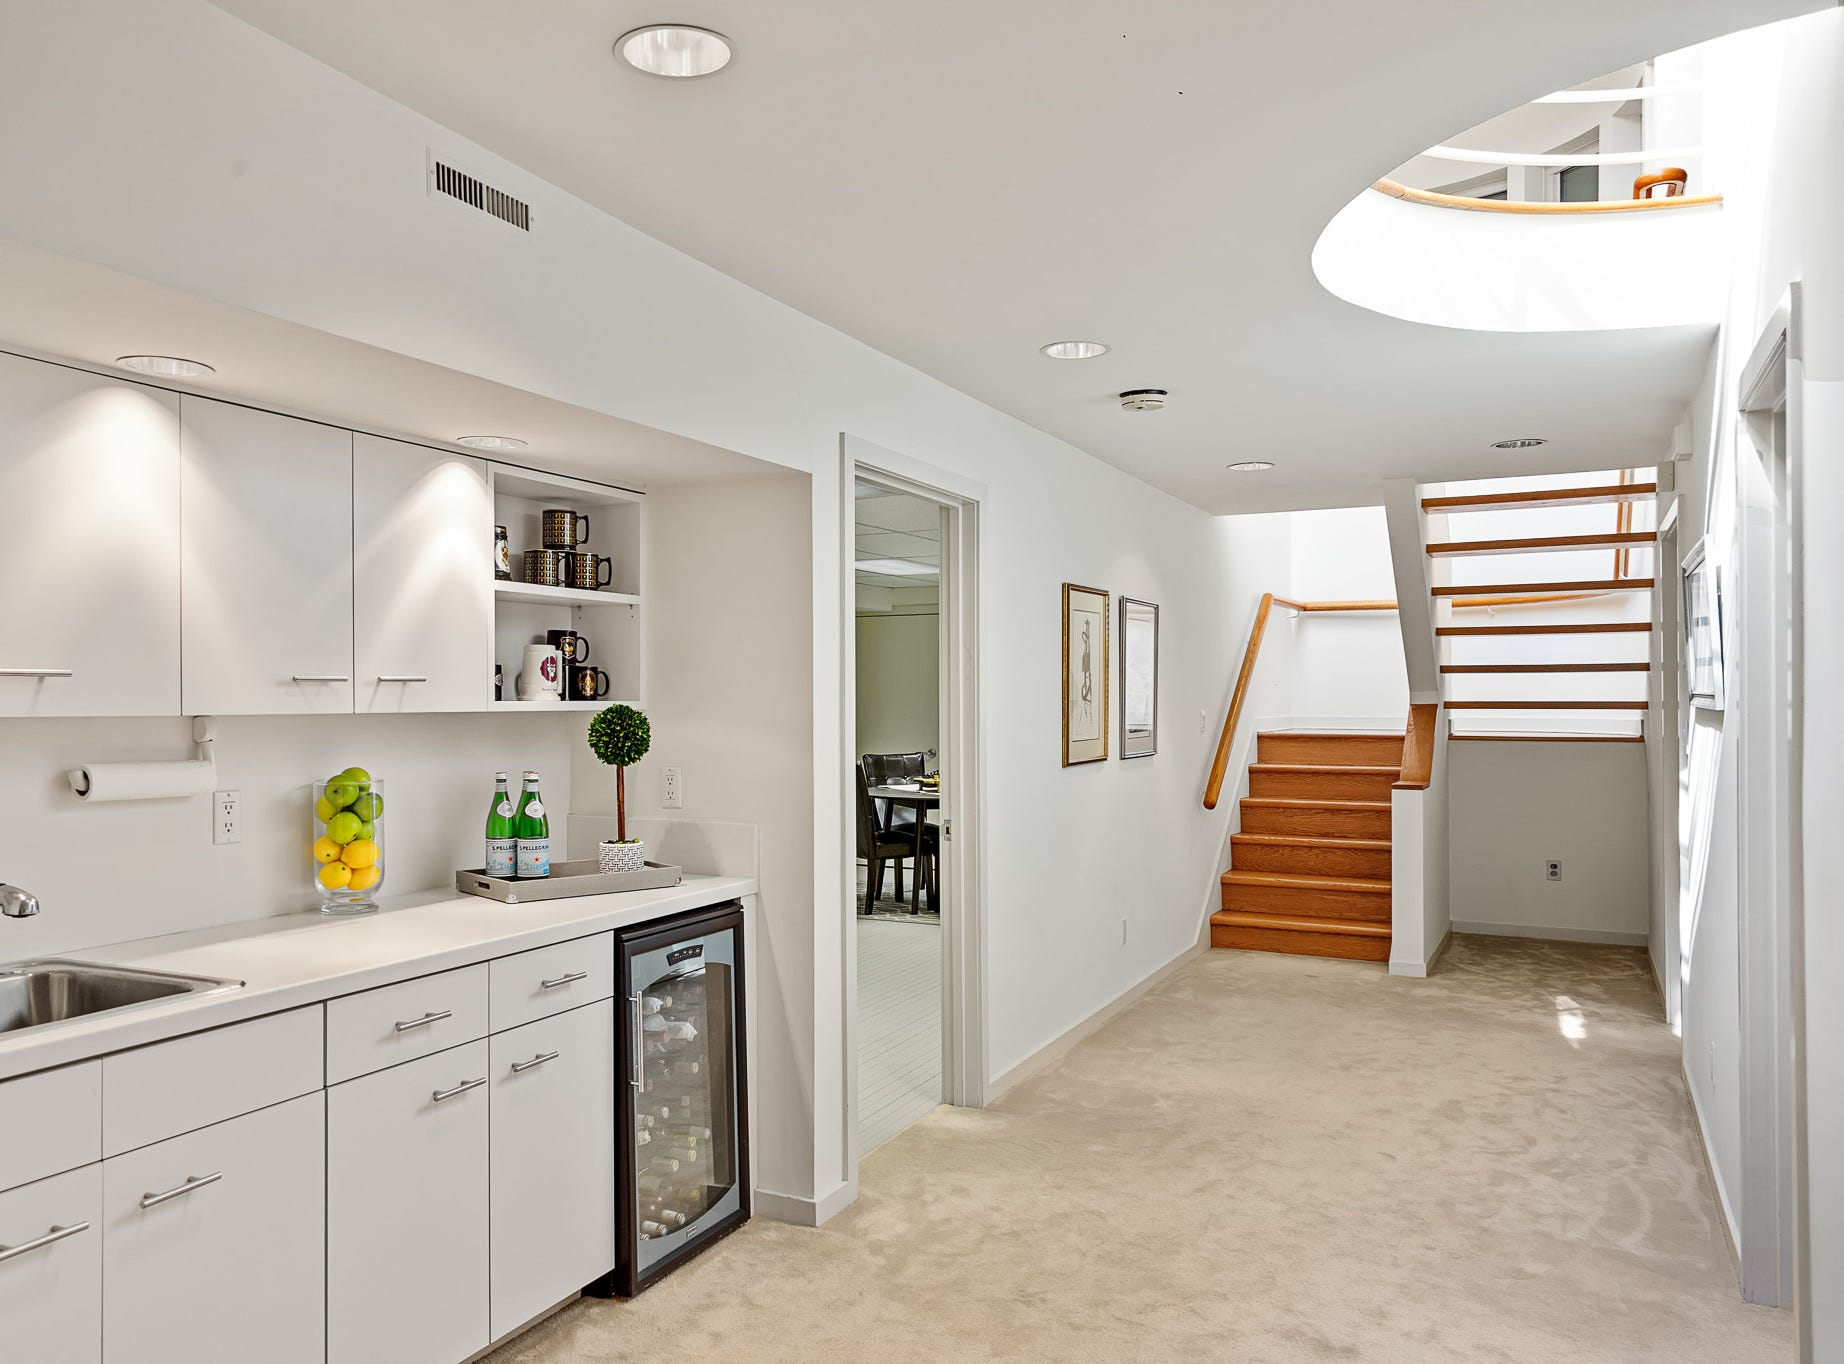 A lower-level area has a kitchenette and a wine fridge at 3611 Centreville Road in Greenville.